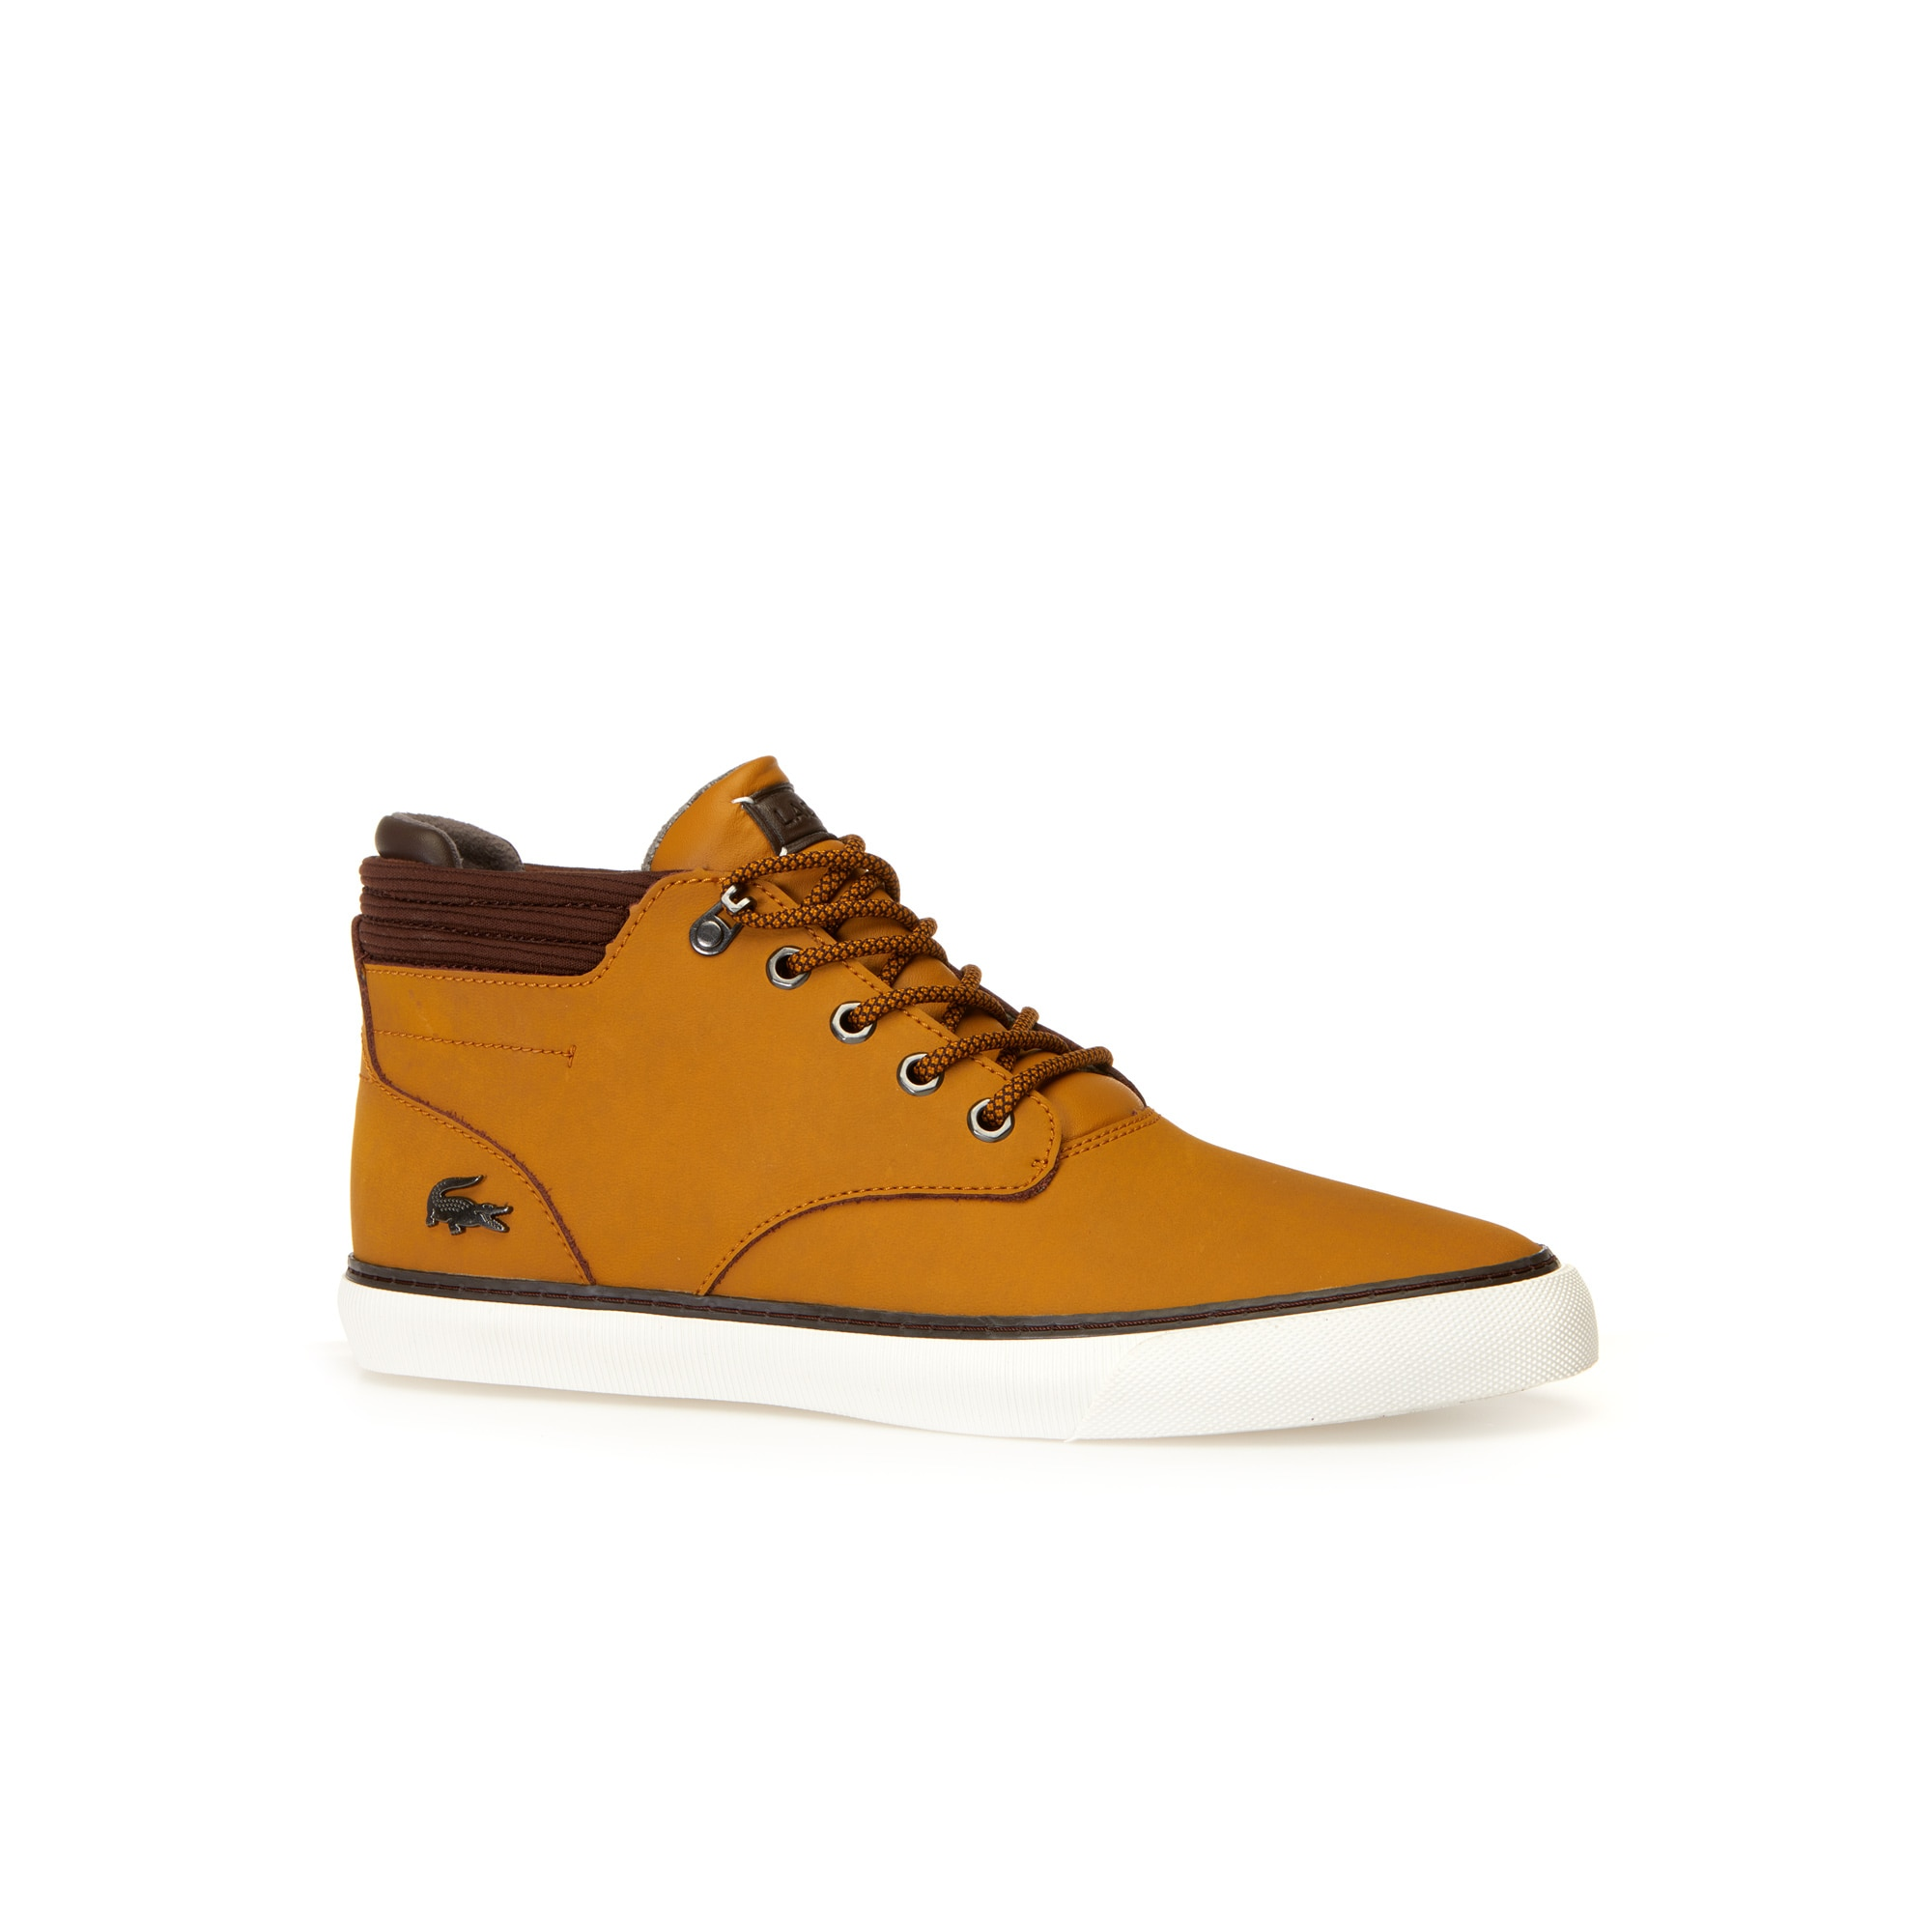 Men's Esparre Winter High-top Leather Trainers